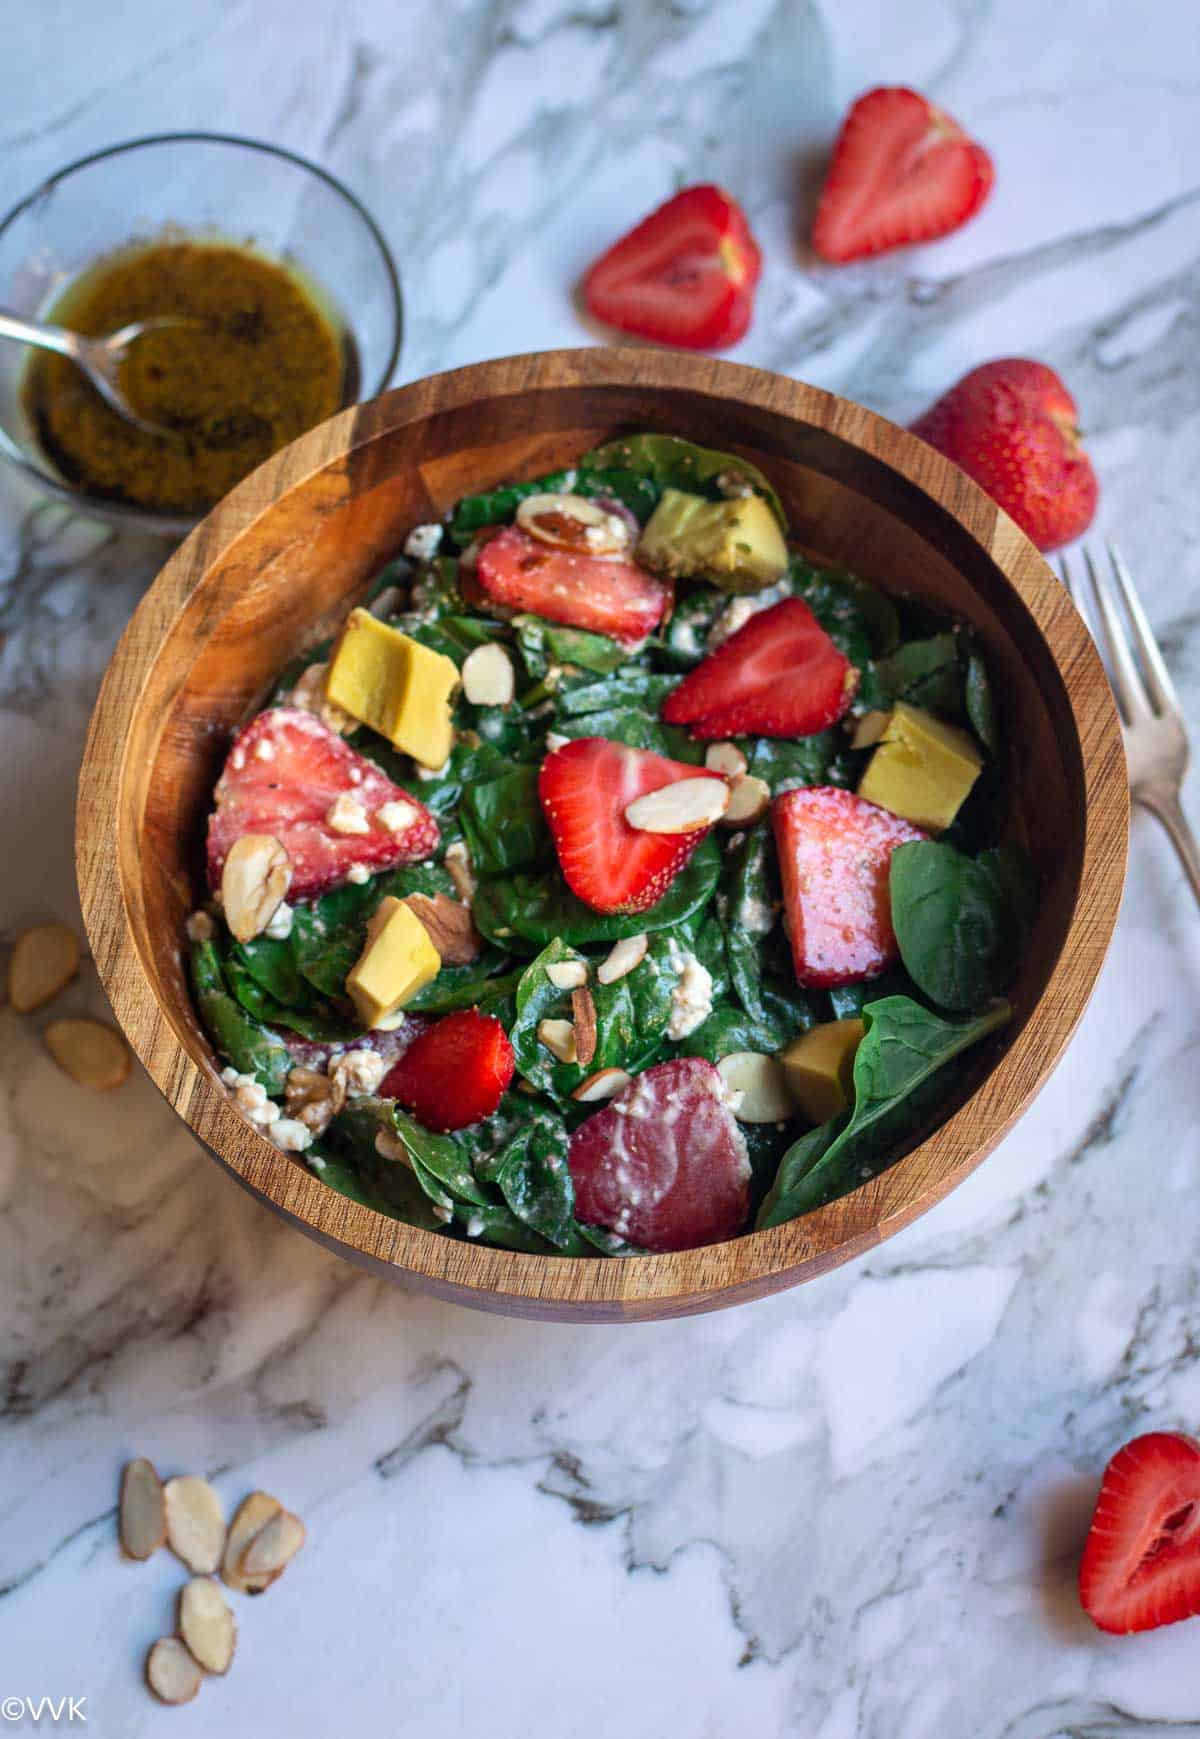 spinach salad with strawberries and almonds served in wooden bowl